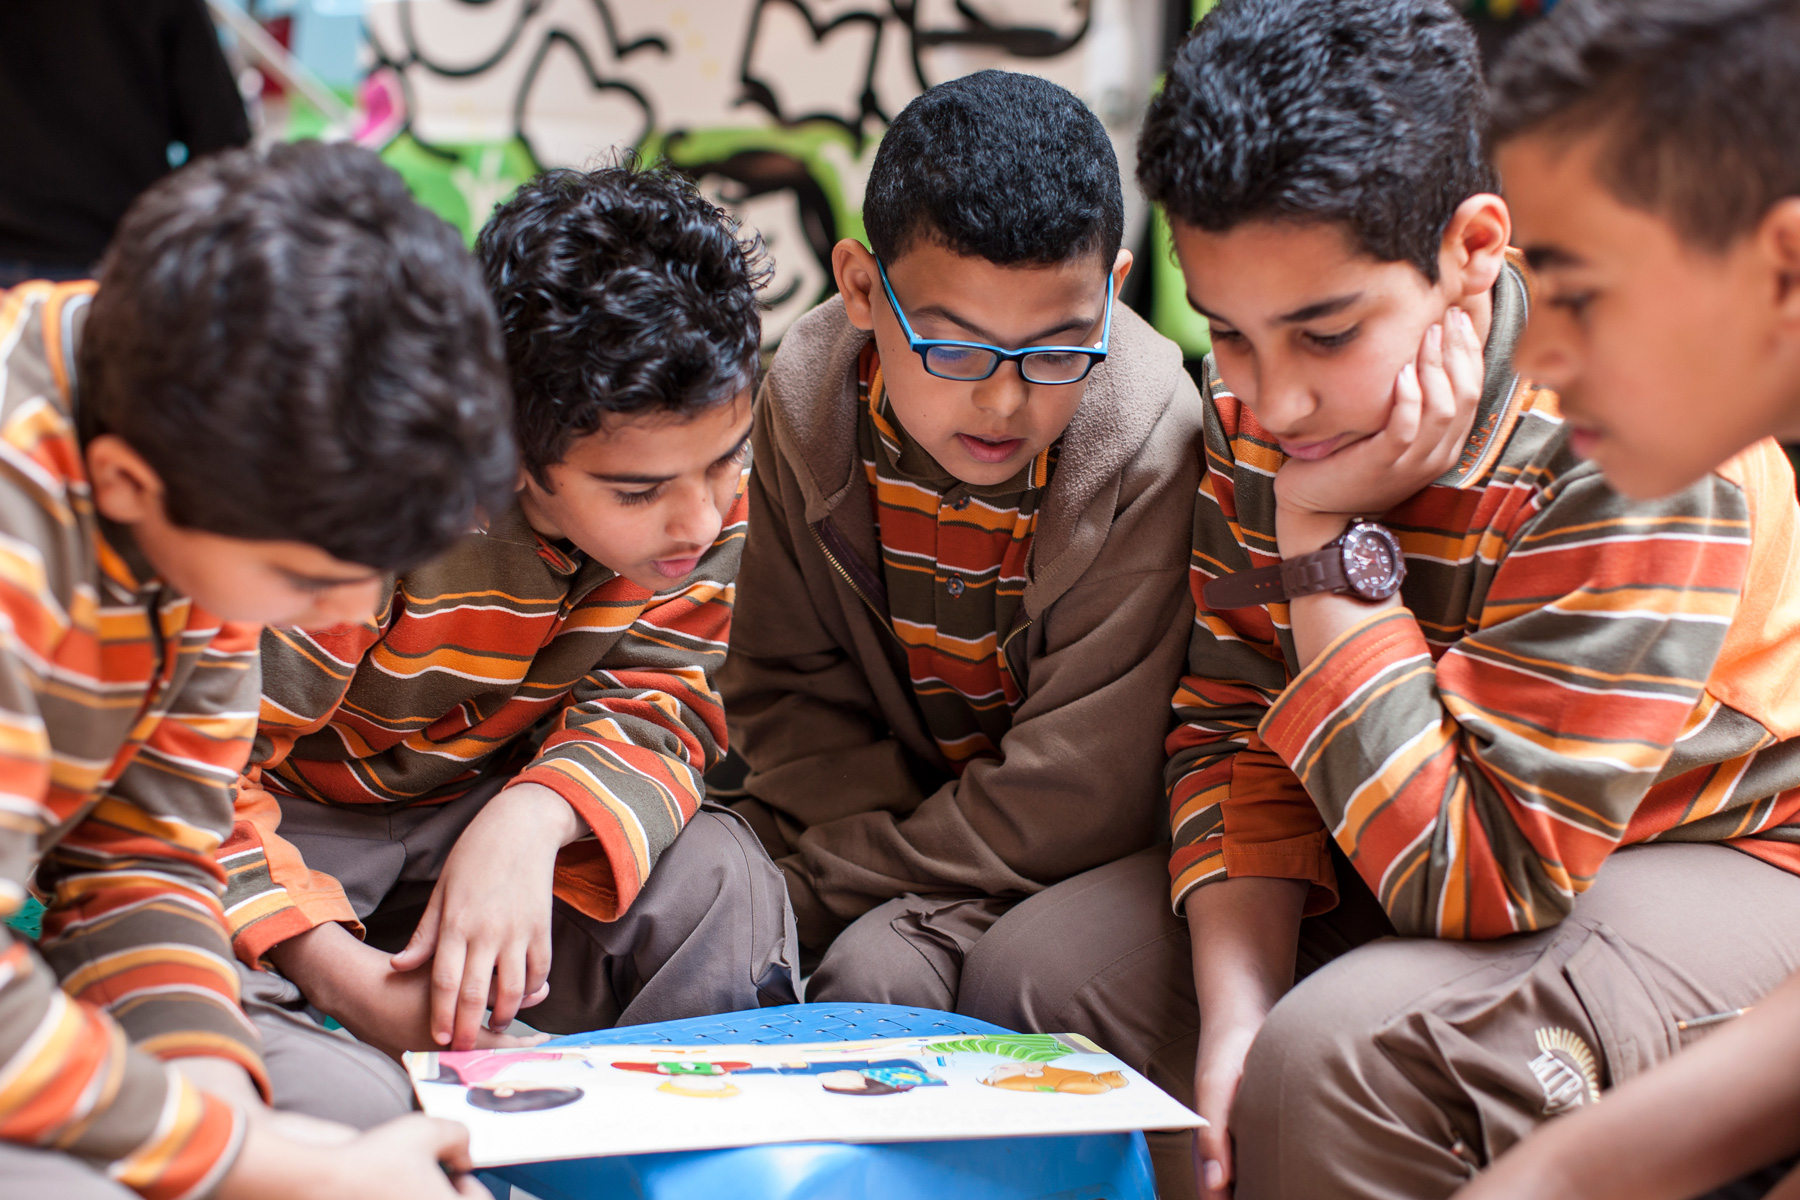 The project targets children and youth in marginalised areas in Egypt.